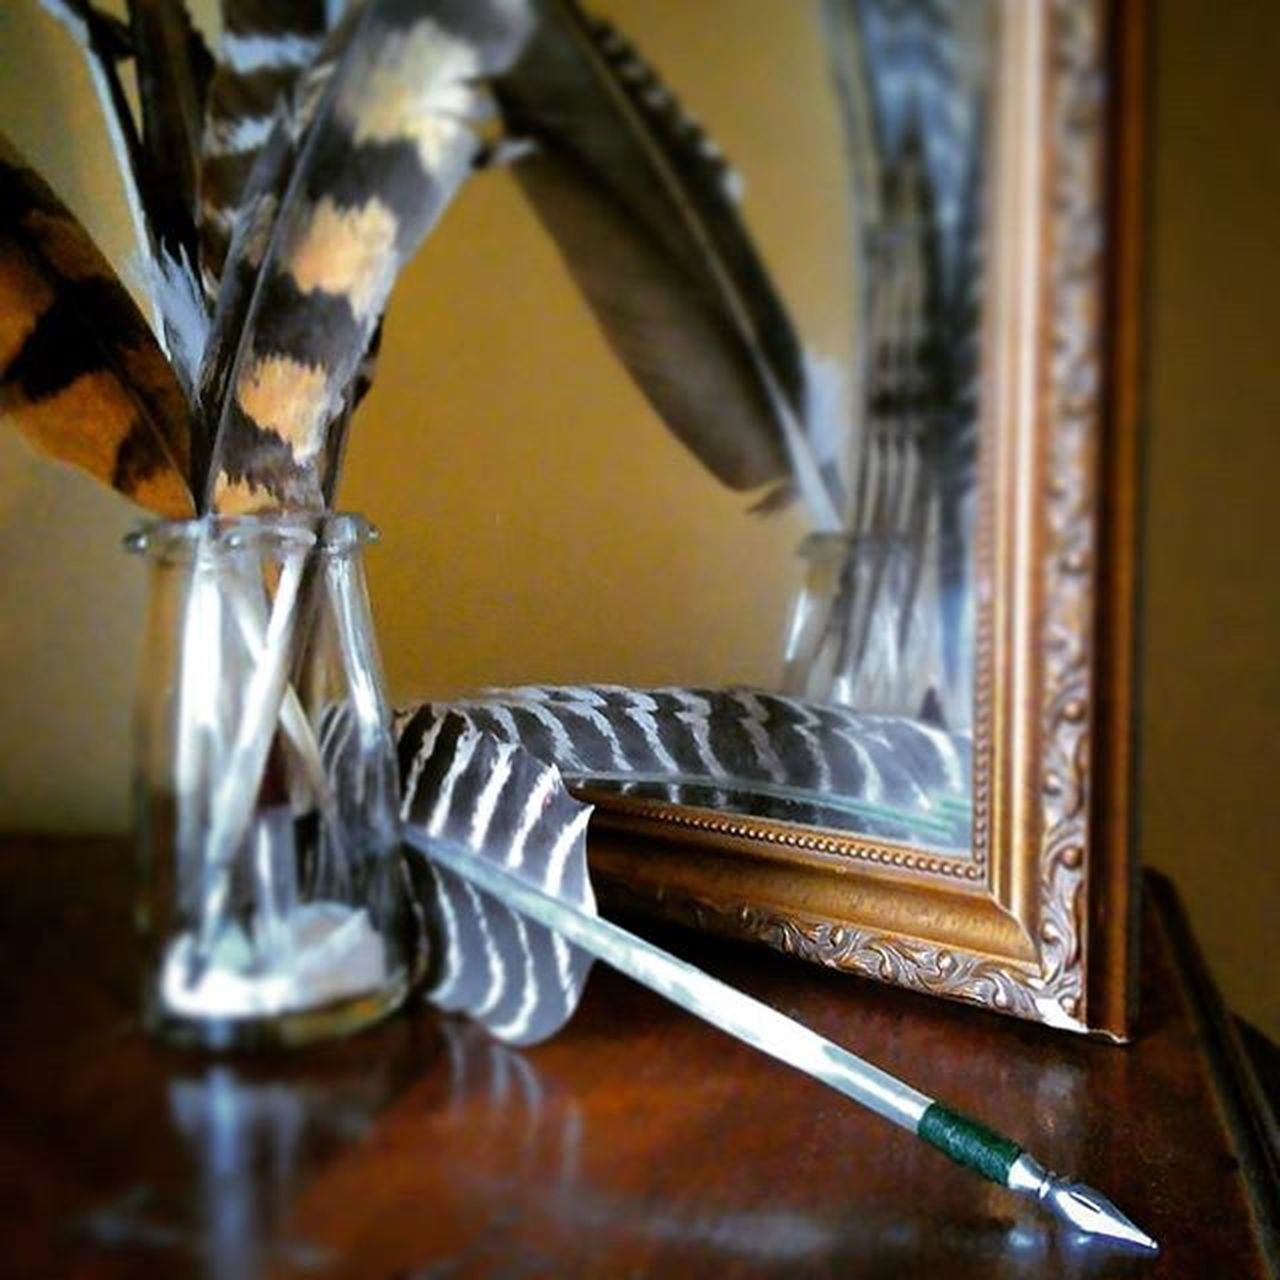 So amazed by the excellent work being done by Jeremiah Staab... His handmade Quillpens are gorgeous as art in and of themselves, but he's using them to create Beautiful Scriptas well. . . . Dippen❤️ Featherporn Feather  Lettering Calligraphy CreativeArtists Tool Handmade Art Tools Handmade Artist I Like ArtistFeatherpen Mountainman Scribe Hand Lettering Craft Calligraphy Pens Calligram Lieblingsteil